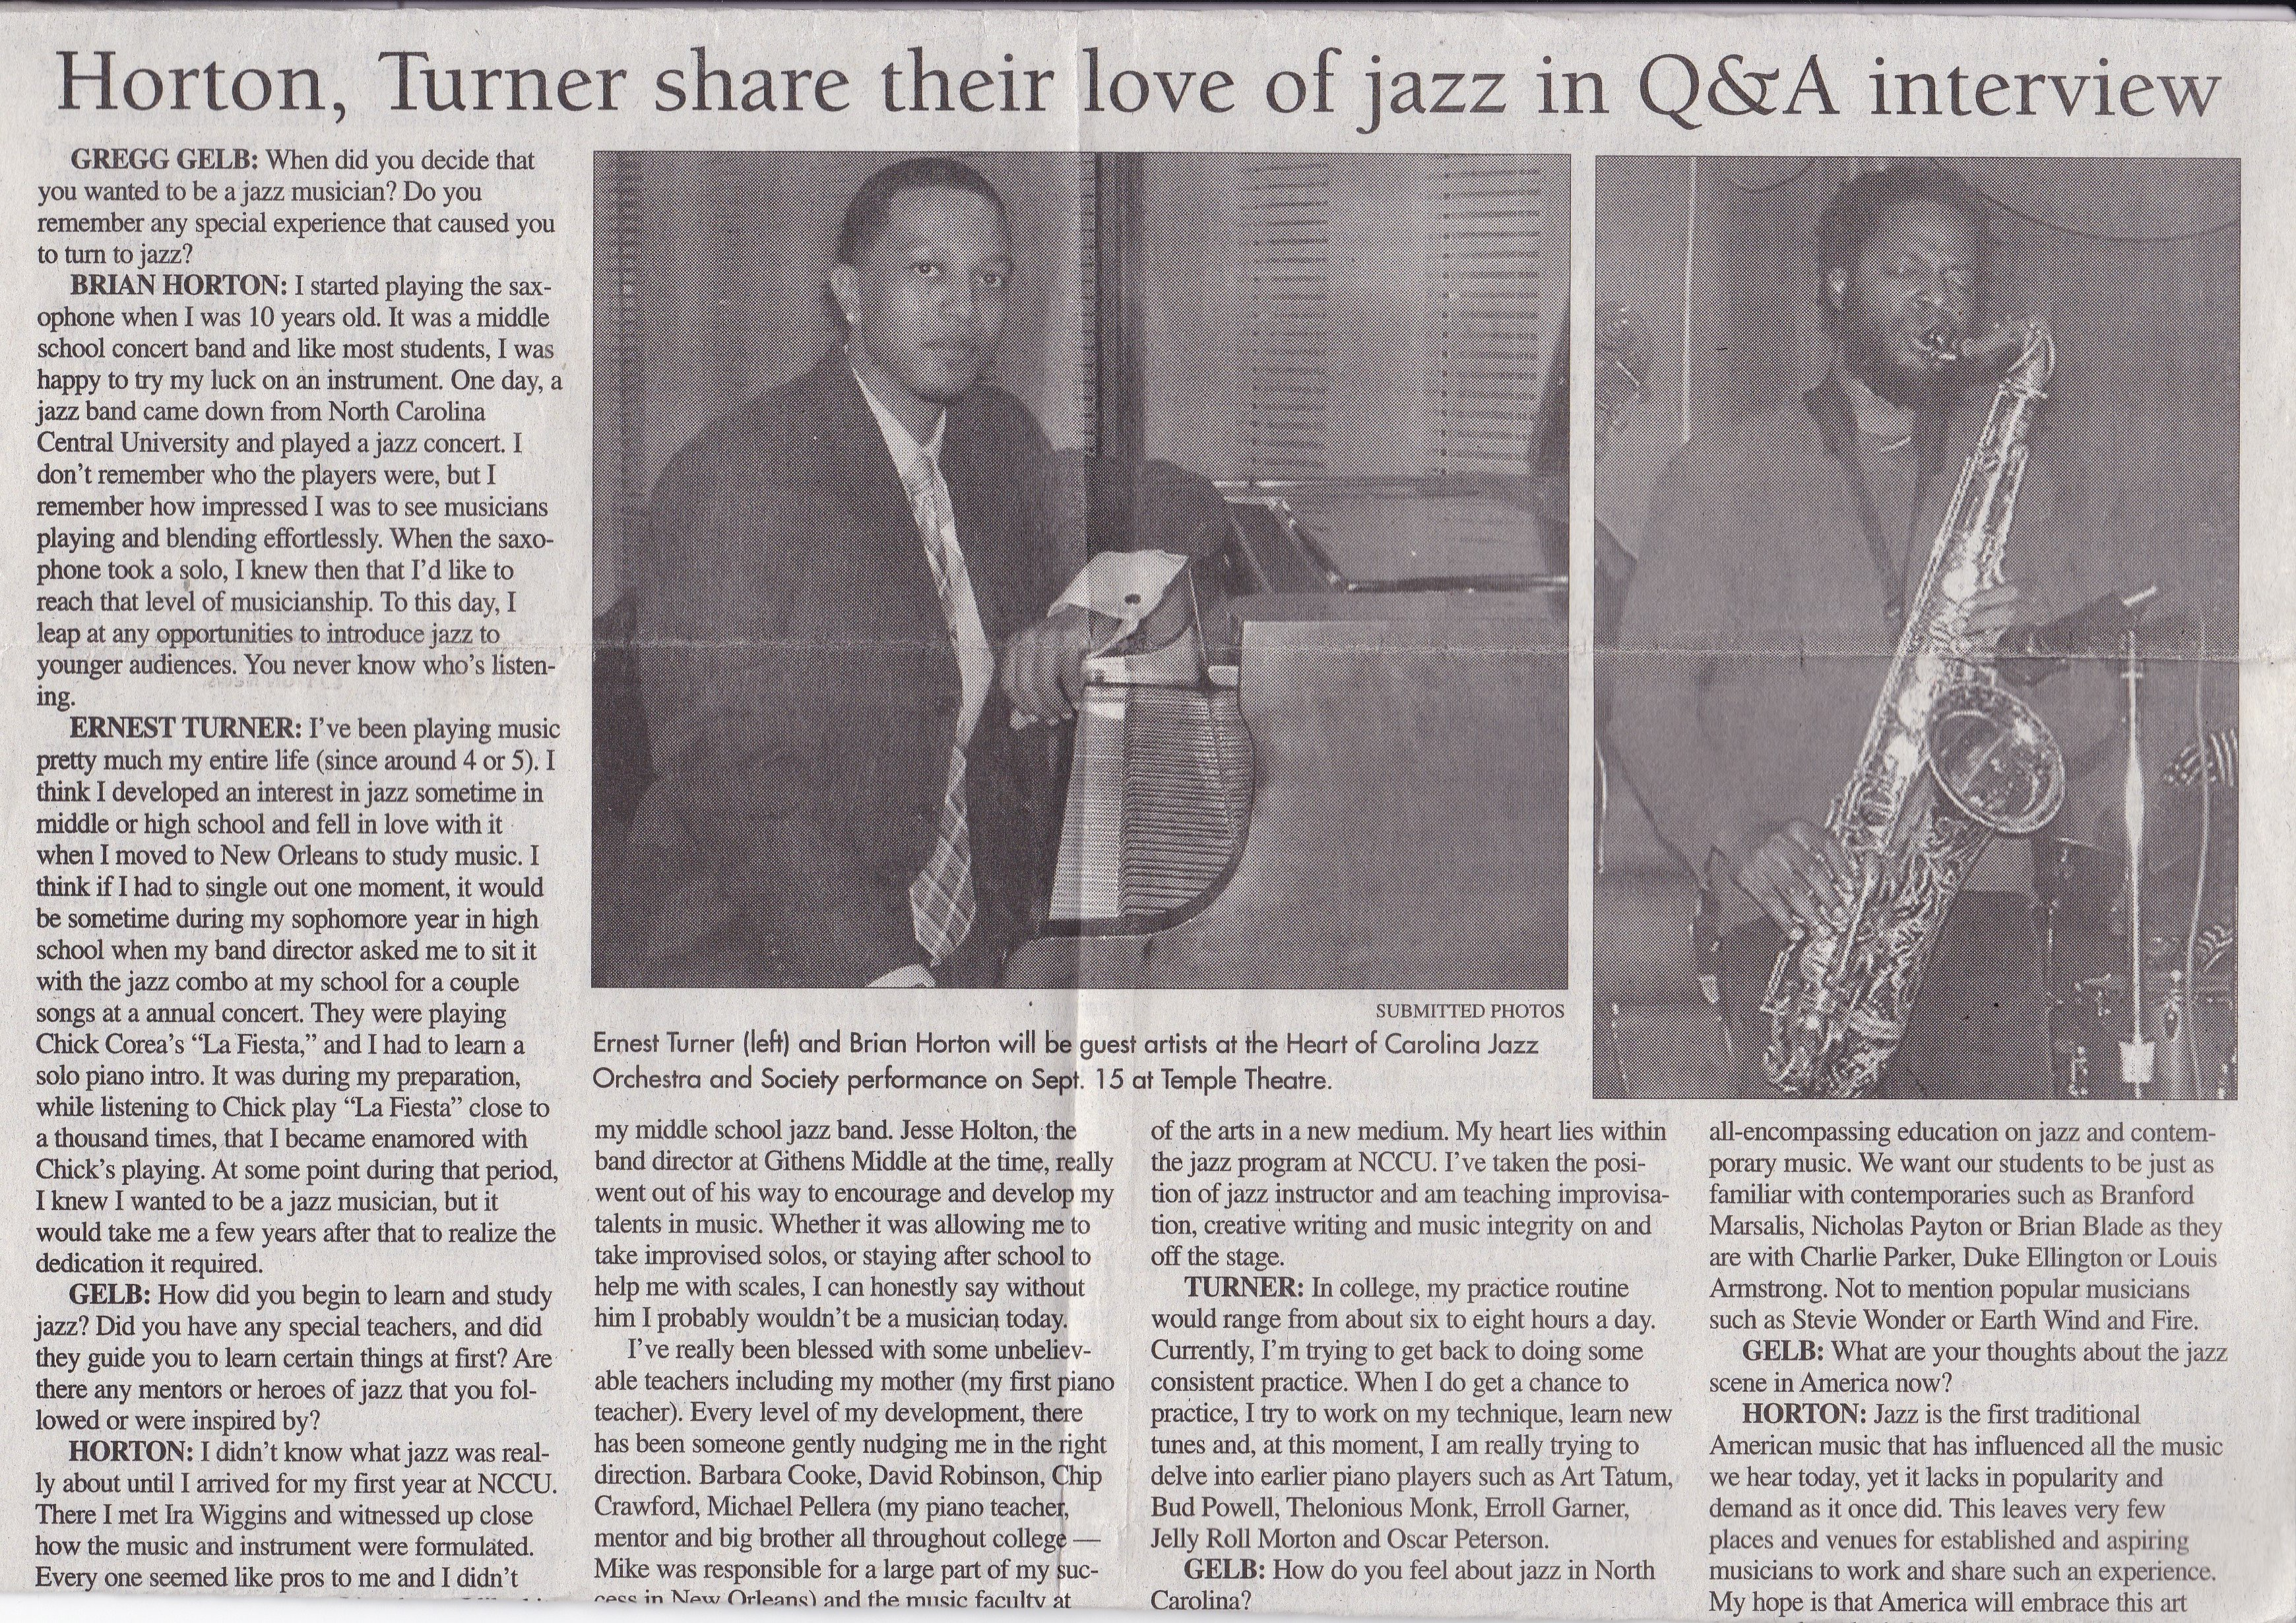 hocjo-guest-Ernest-Turner-and-Brian-Horton-article-pg-1.